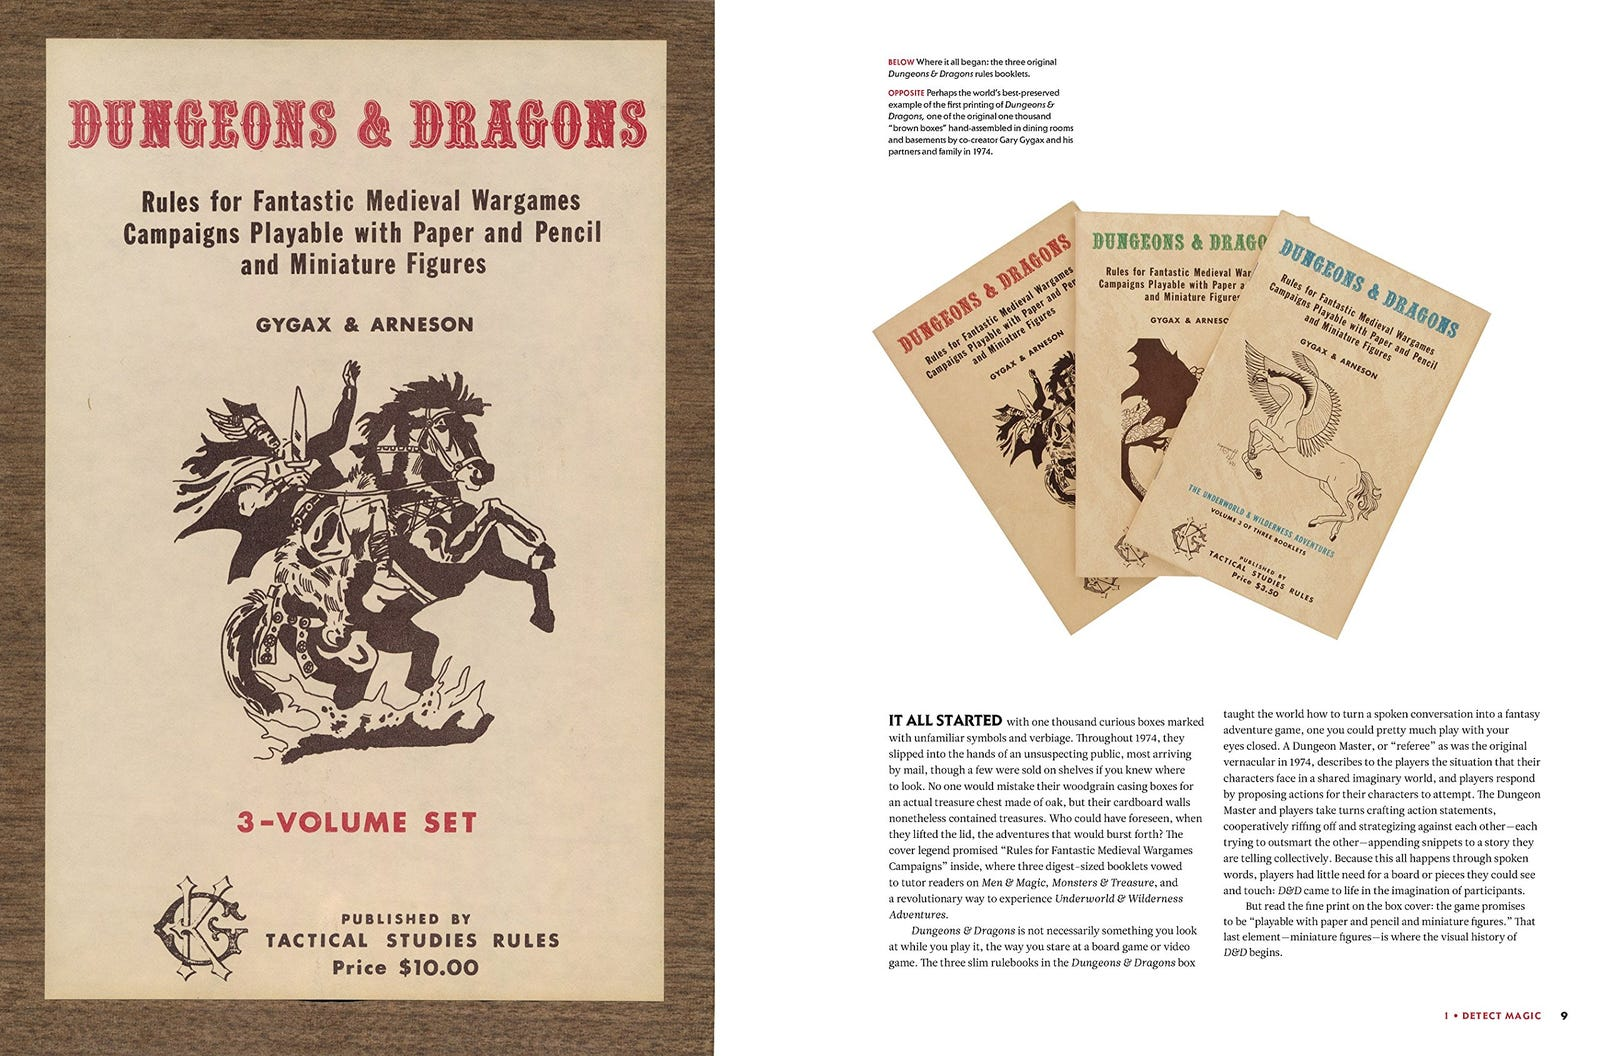 Example interior pages from Dungeons & Dragons: Art & Arcana.